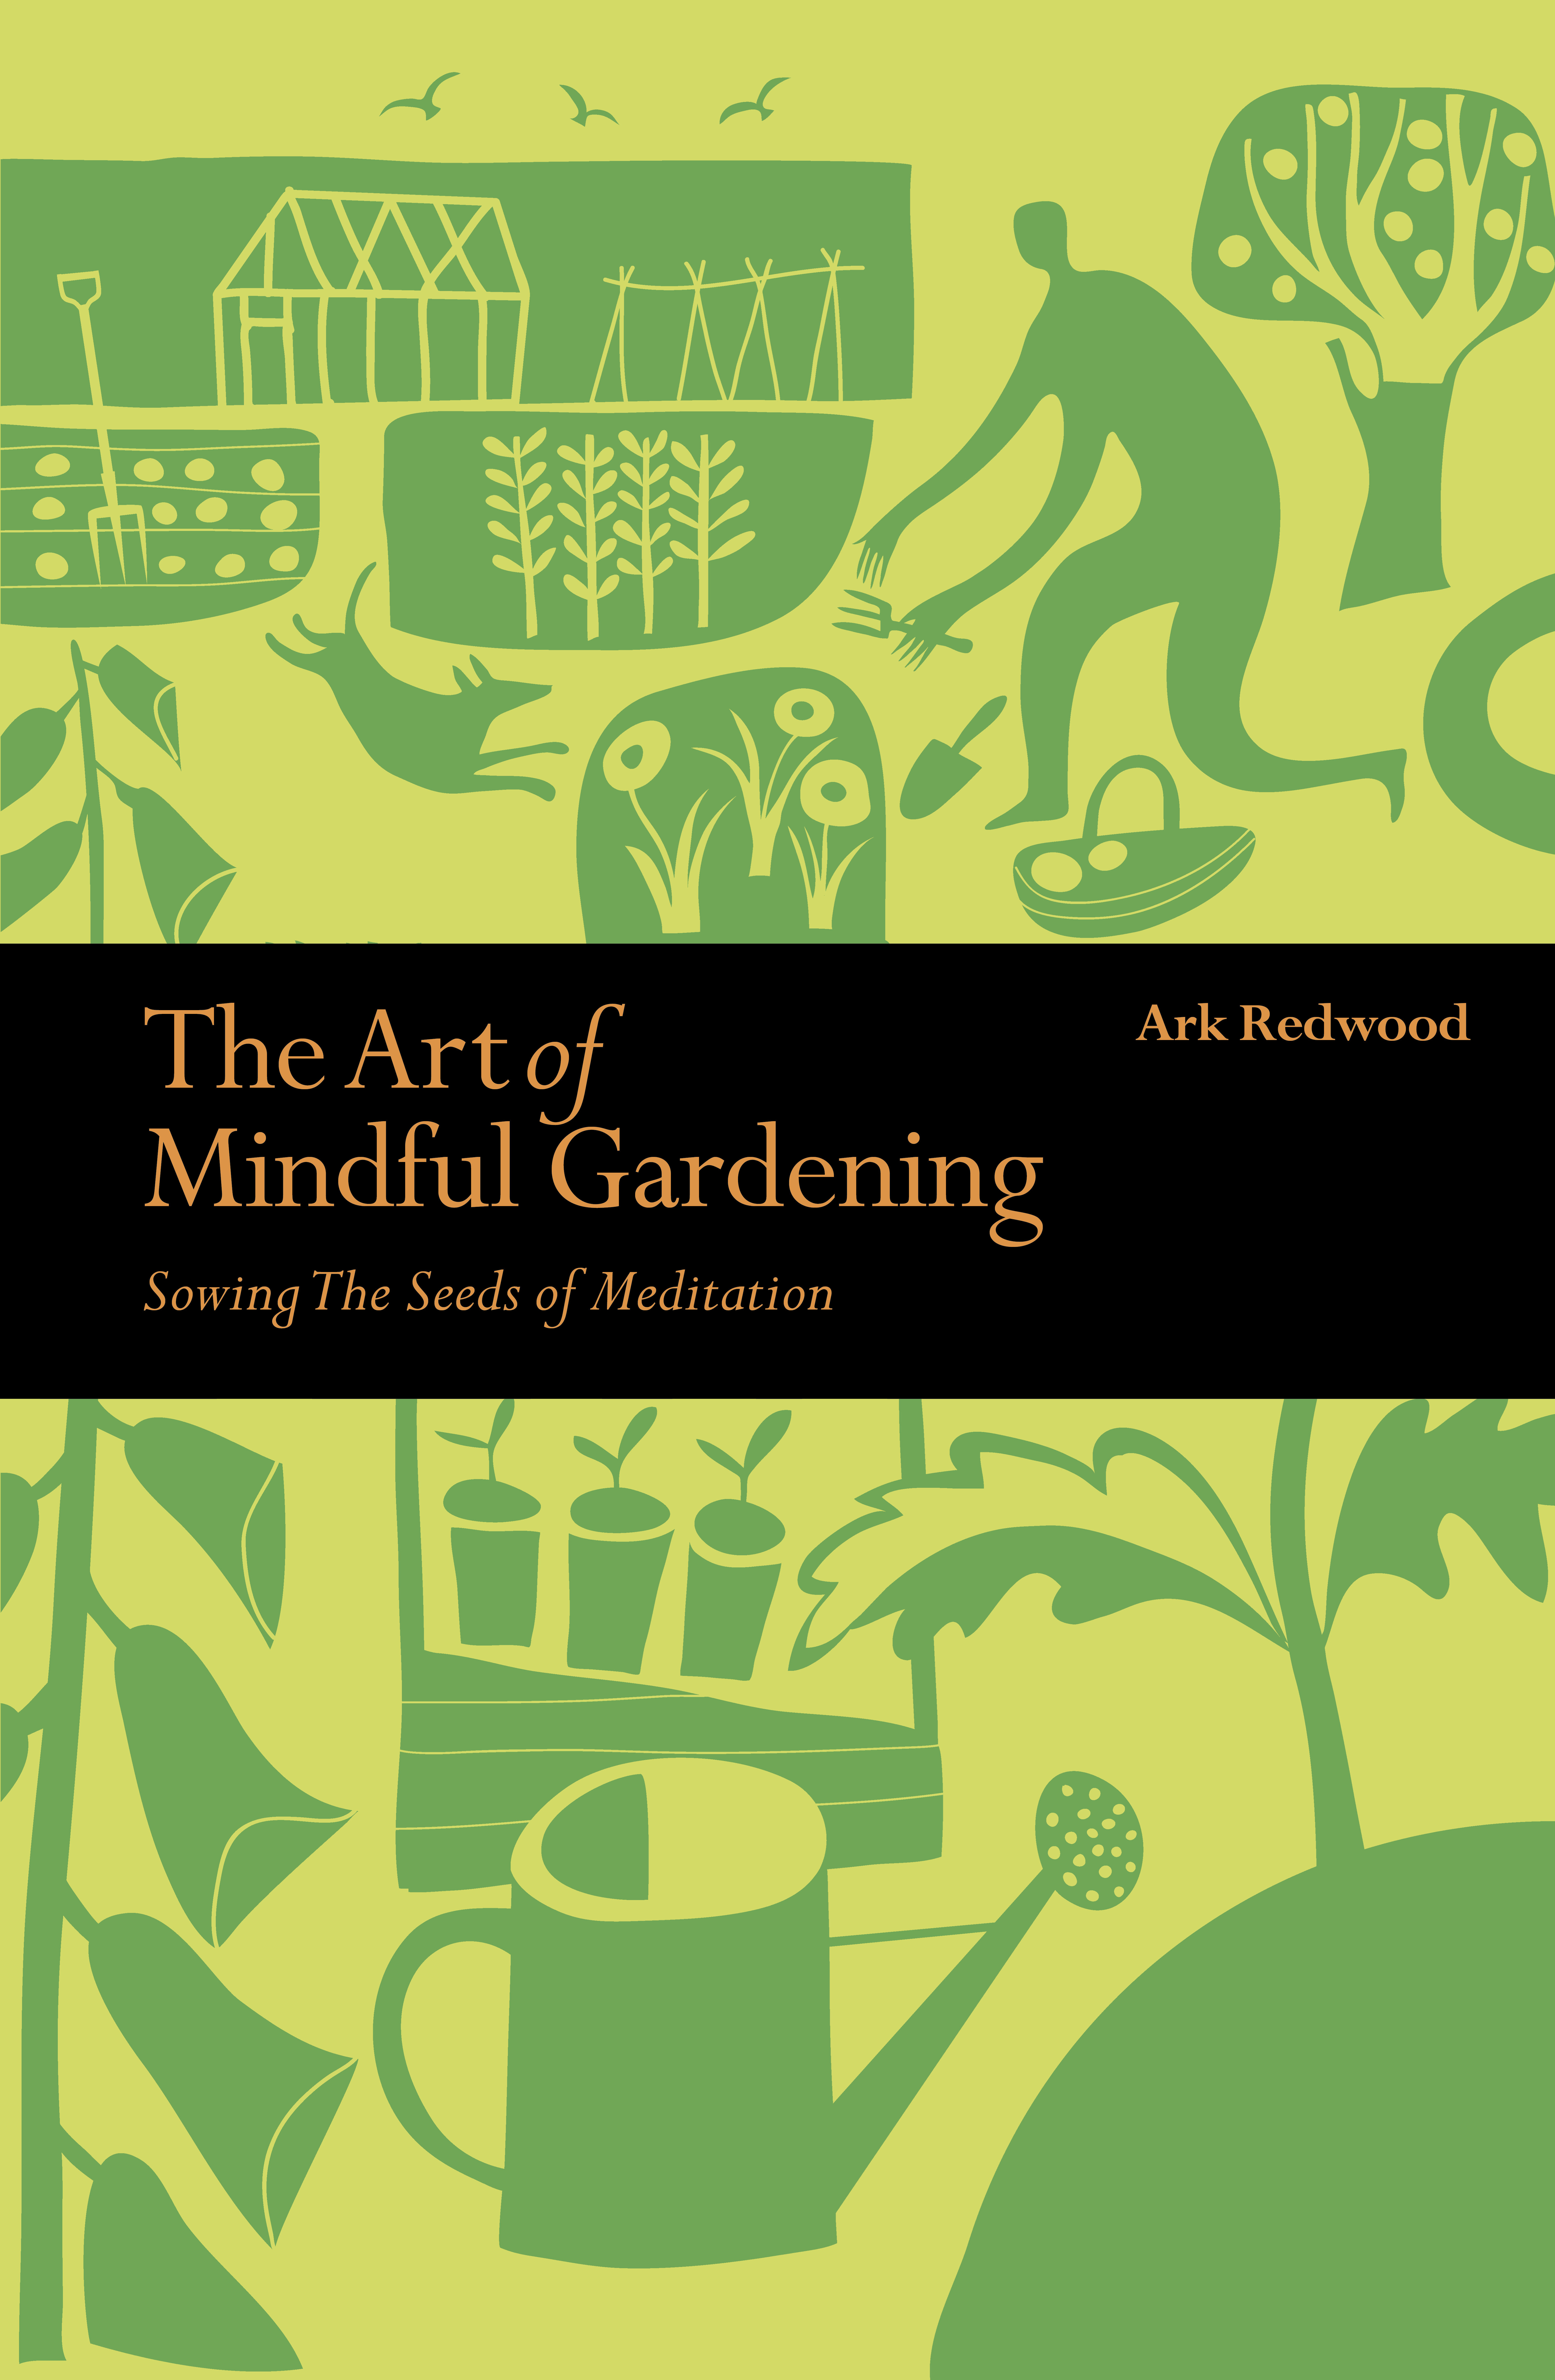 The Art Of Mindful Gardening Ark Redwood 9781782405832